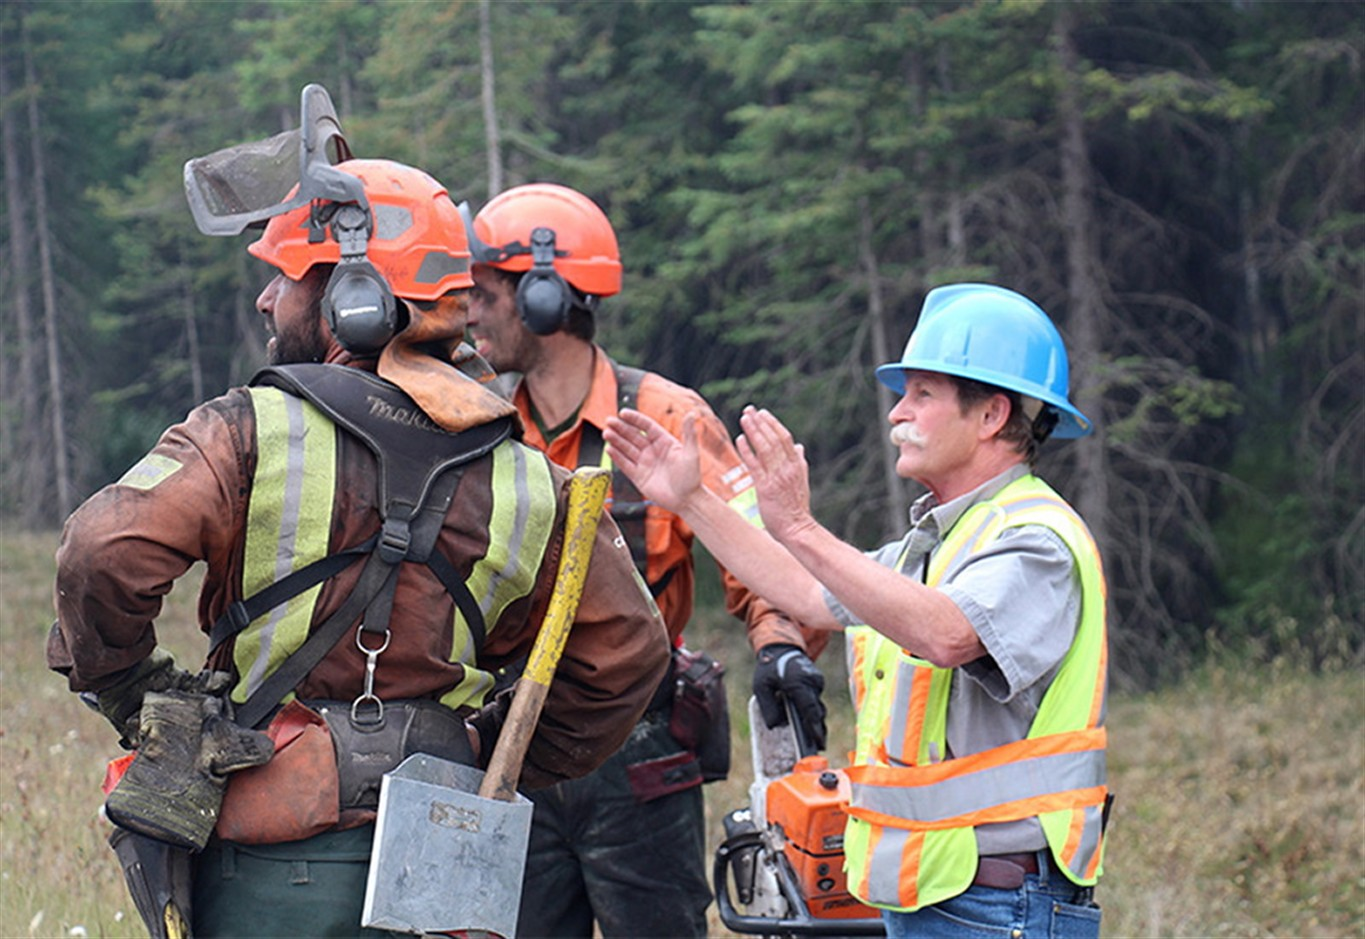 evac chair canada power wheel chairs new evacuation order for northwest b c after intense